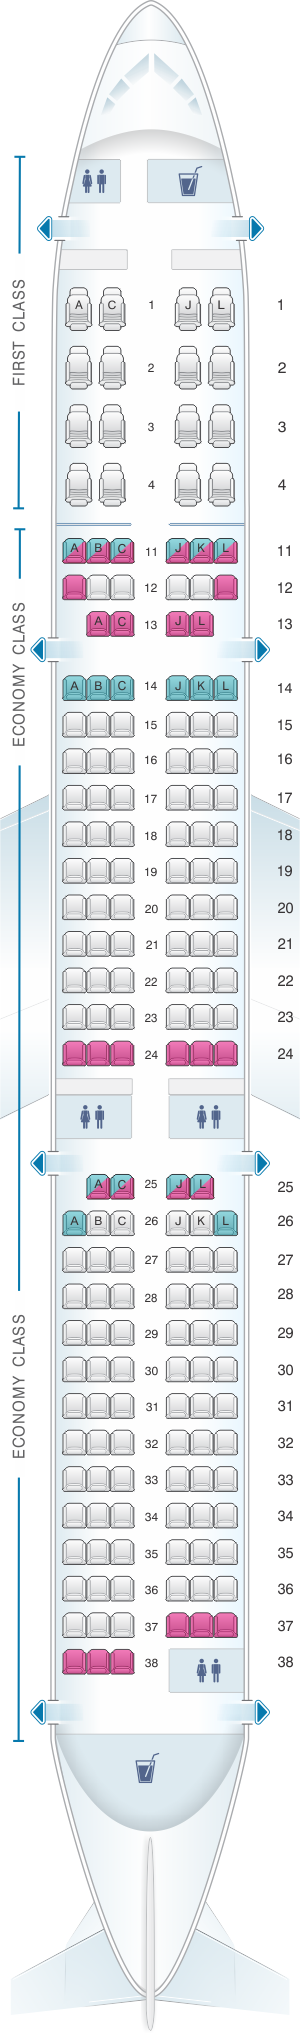 Seat map for Air China Airbus A321 200 Config. 2